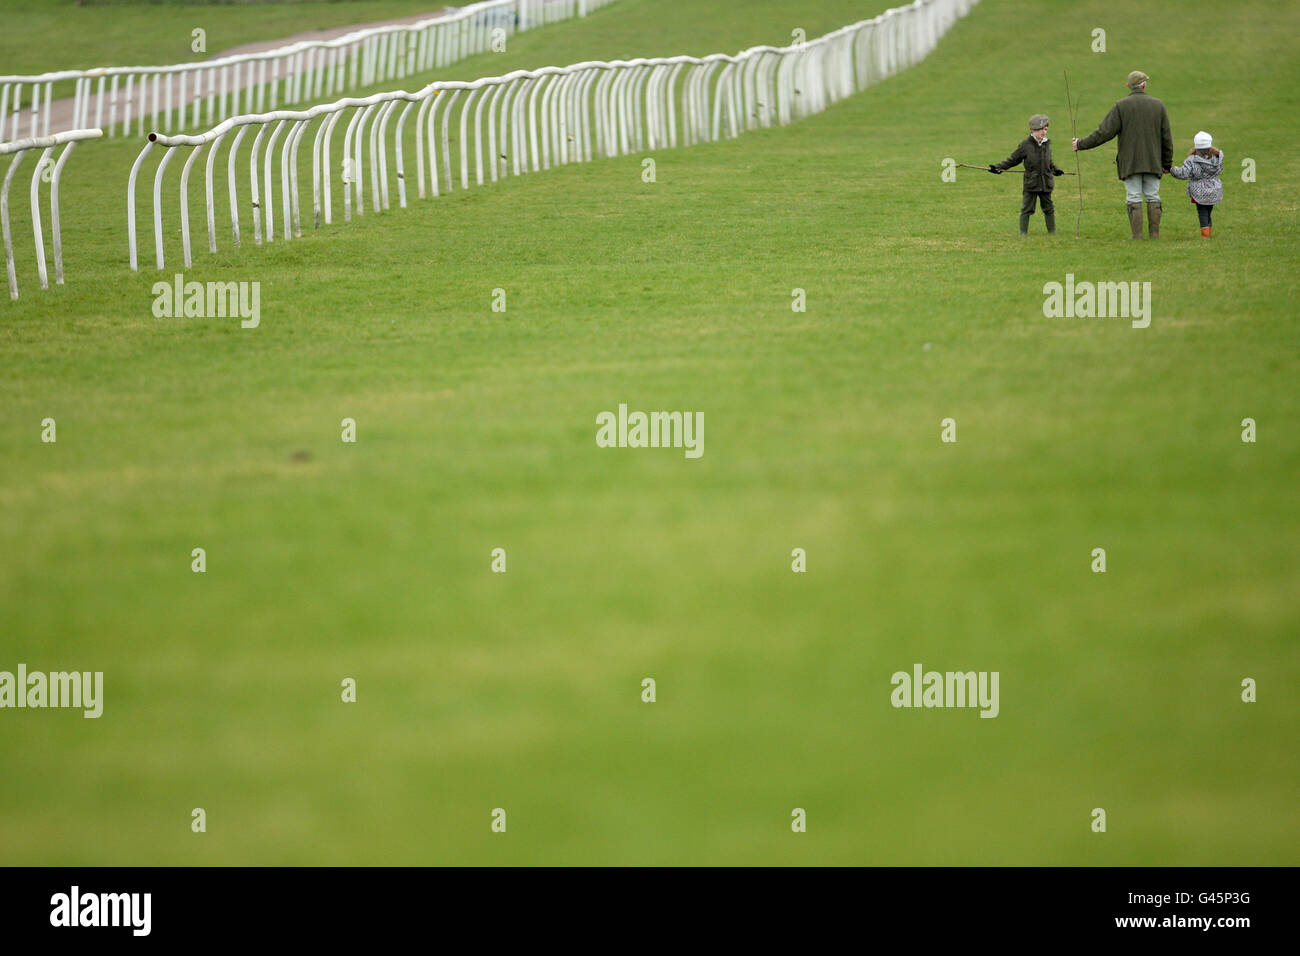 Horse Racing - Leicester Racecourse Stock Photo